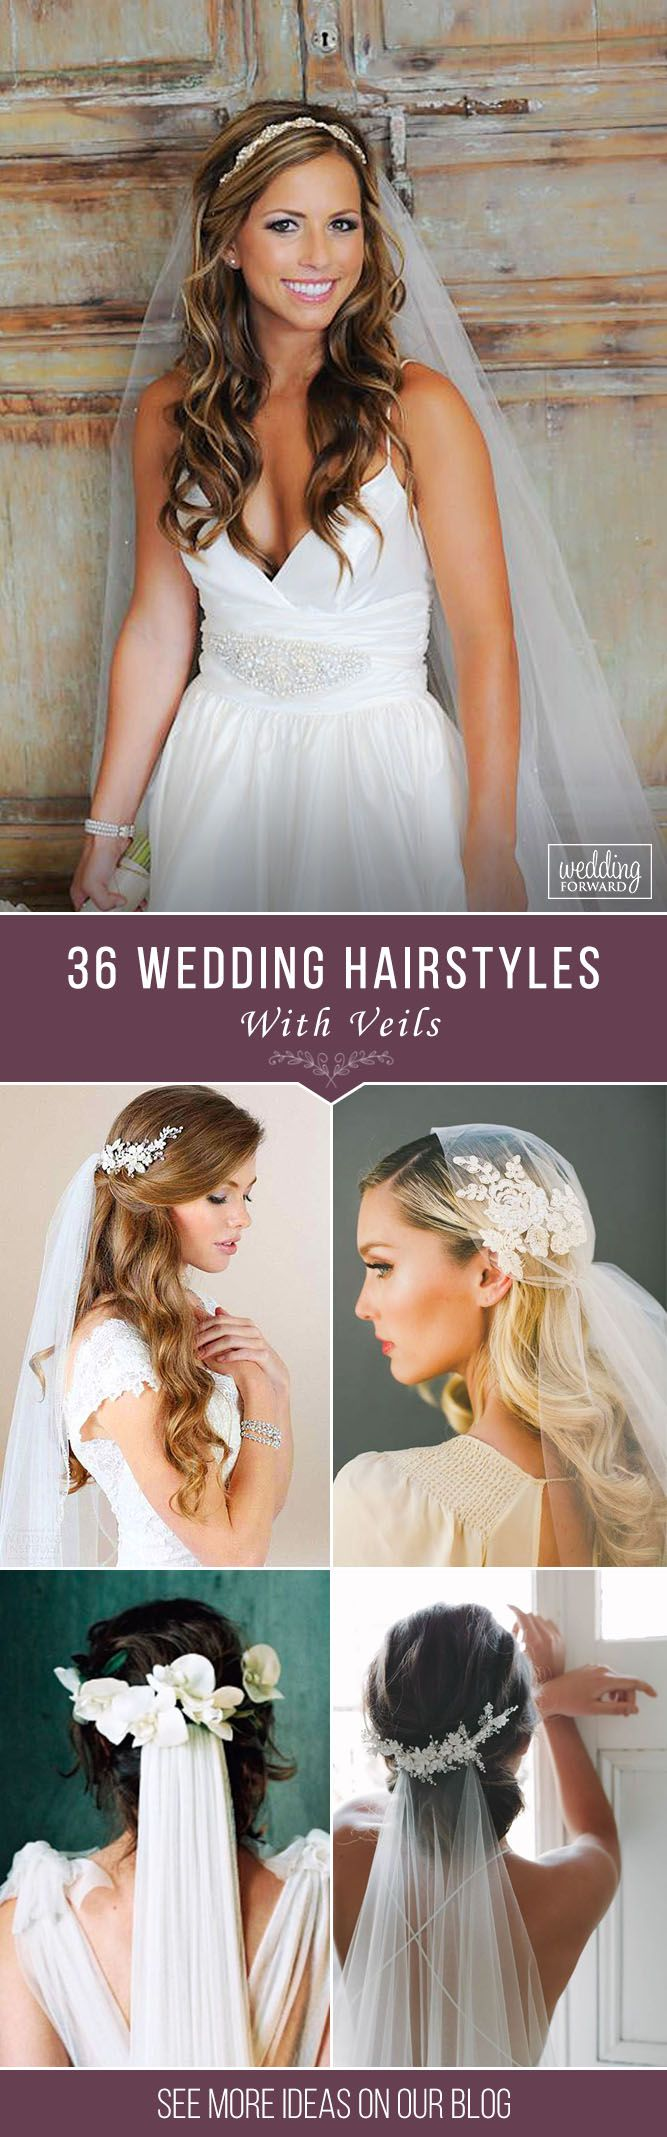 36 Wedding Hairstyles With Veil ❤ We picked up wedding hairstyles with veil fo...